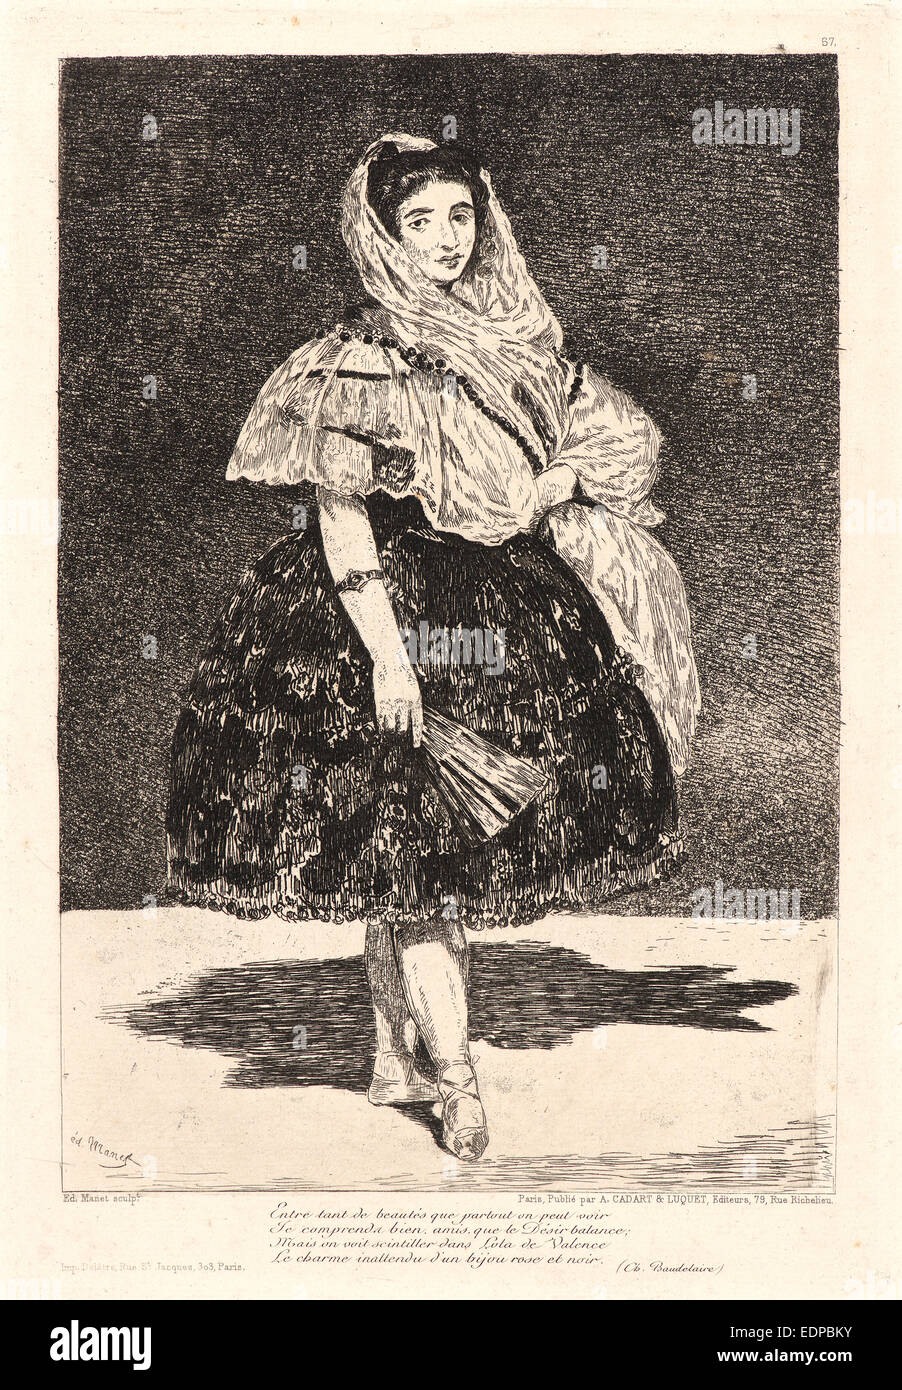 Édouard Manet (French, 1832 - 1883). Lola de Valence, 1863. Etching, aquatint, and roulette. Third state - Stock Image